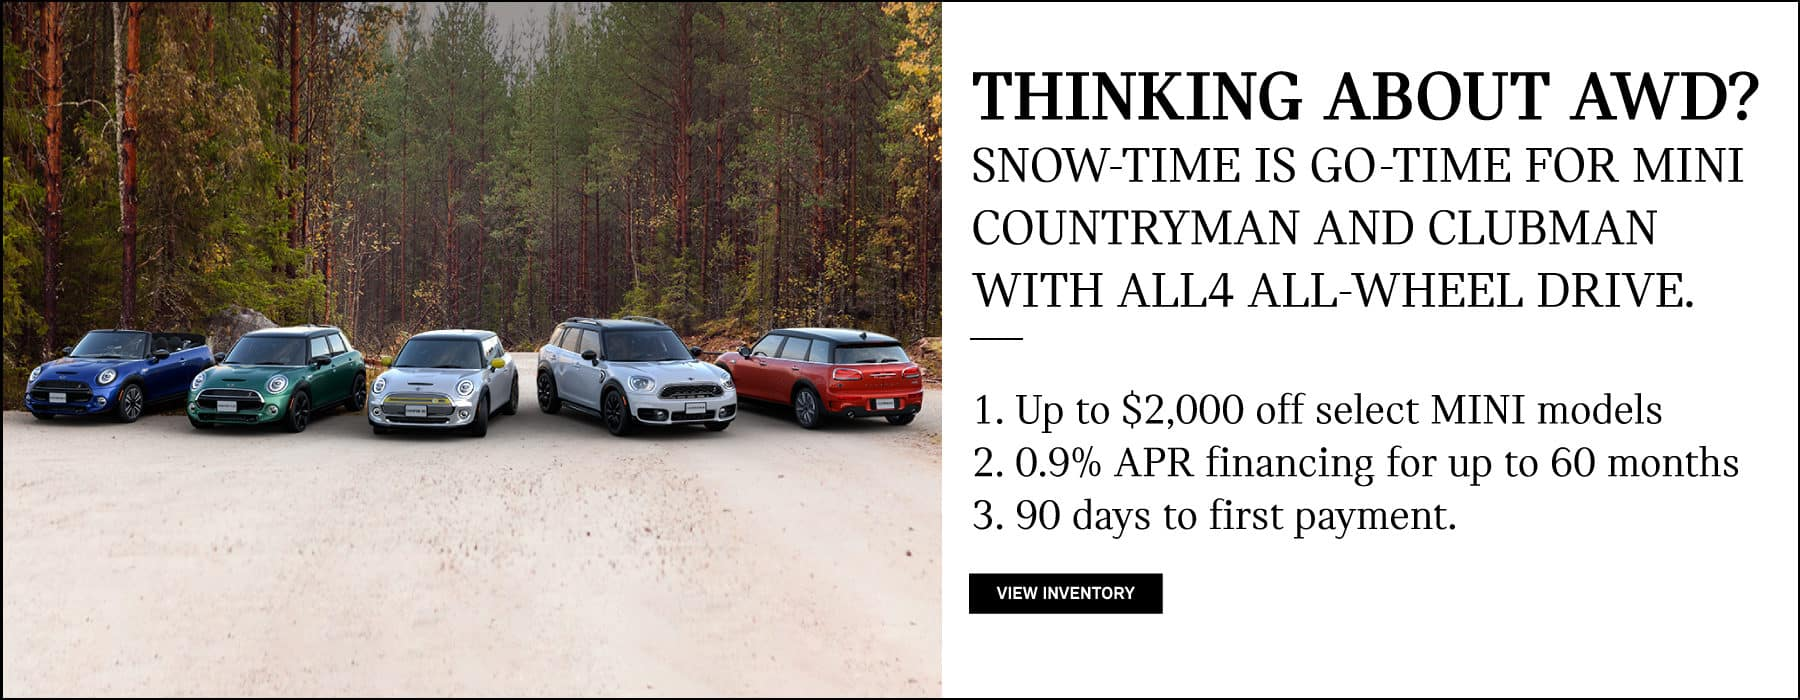 Up to $2,000 off select mini models, 0.9% APR and 90 days to first payment